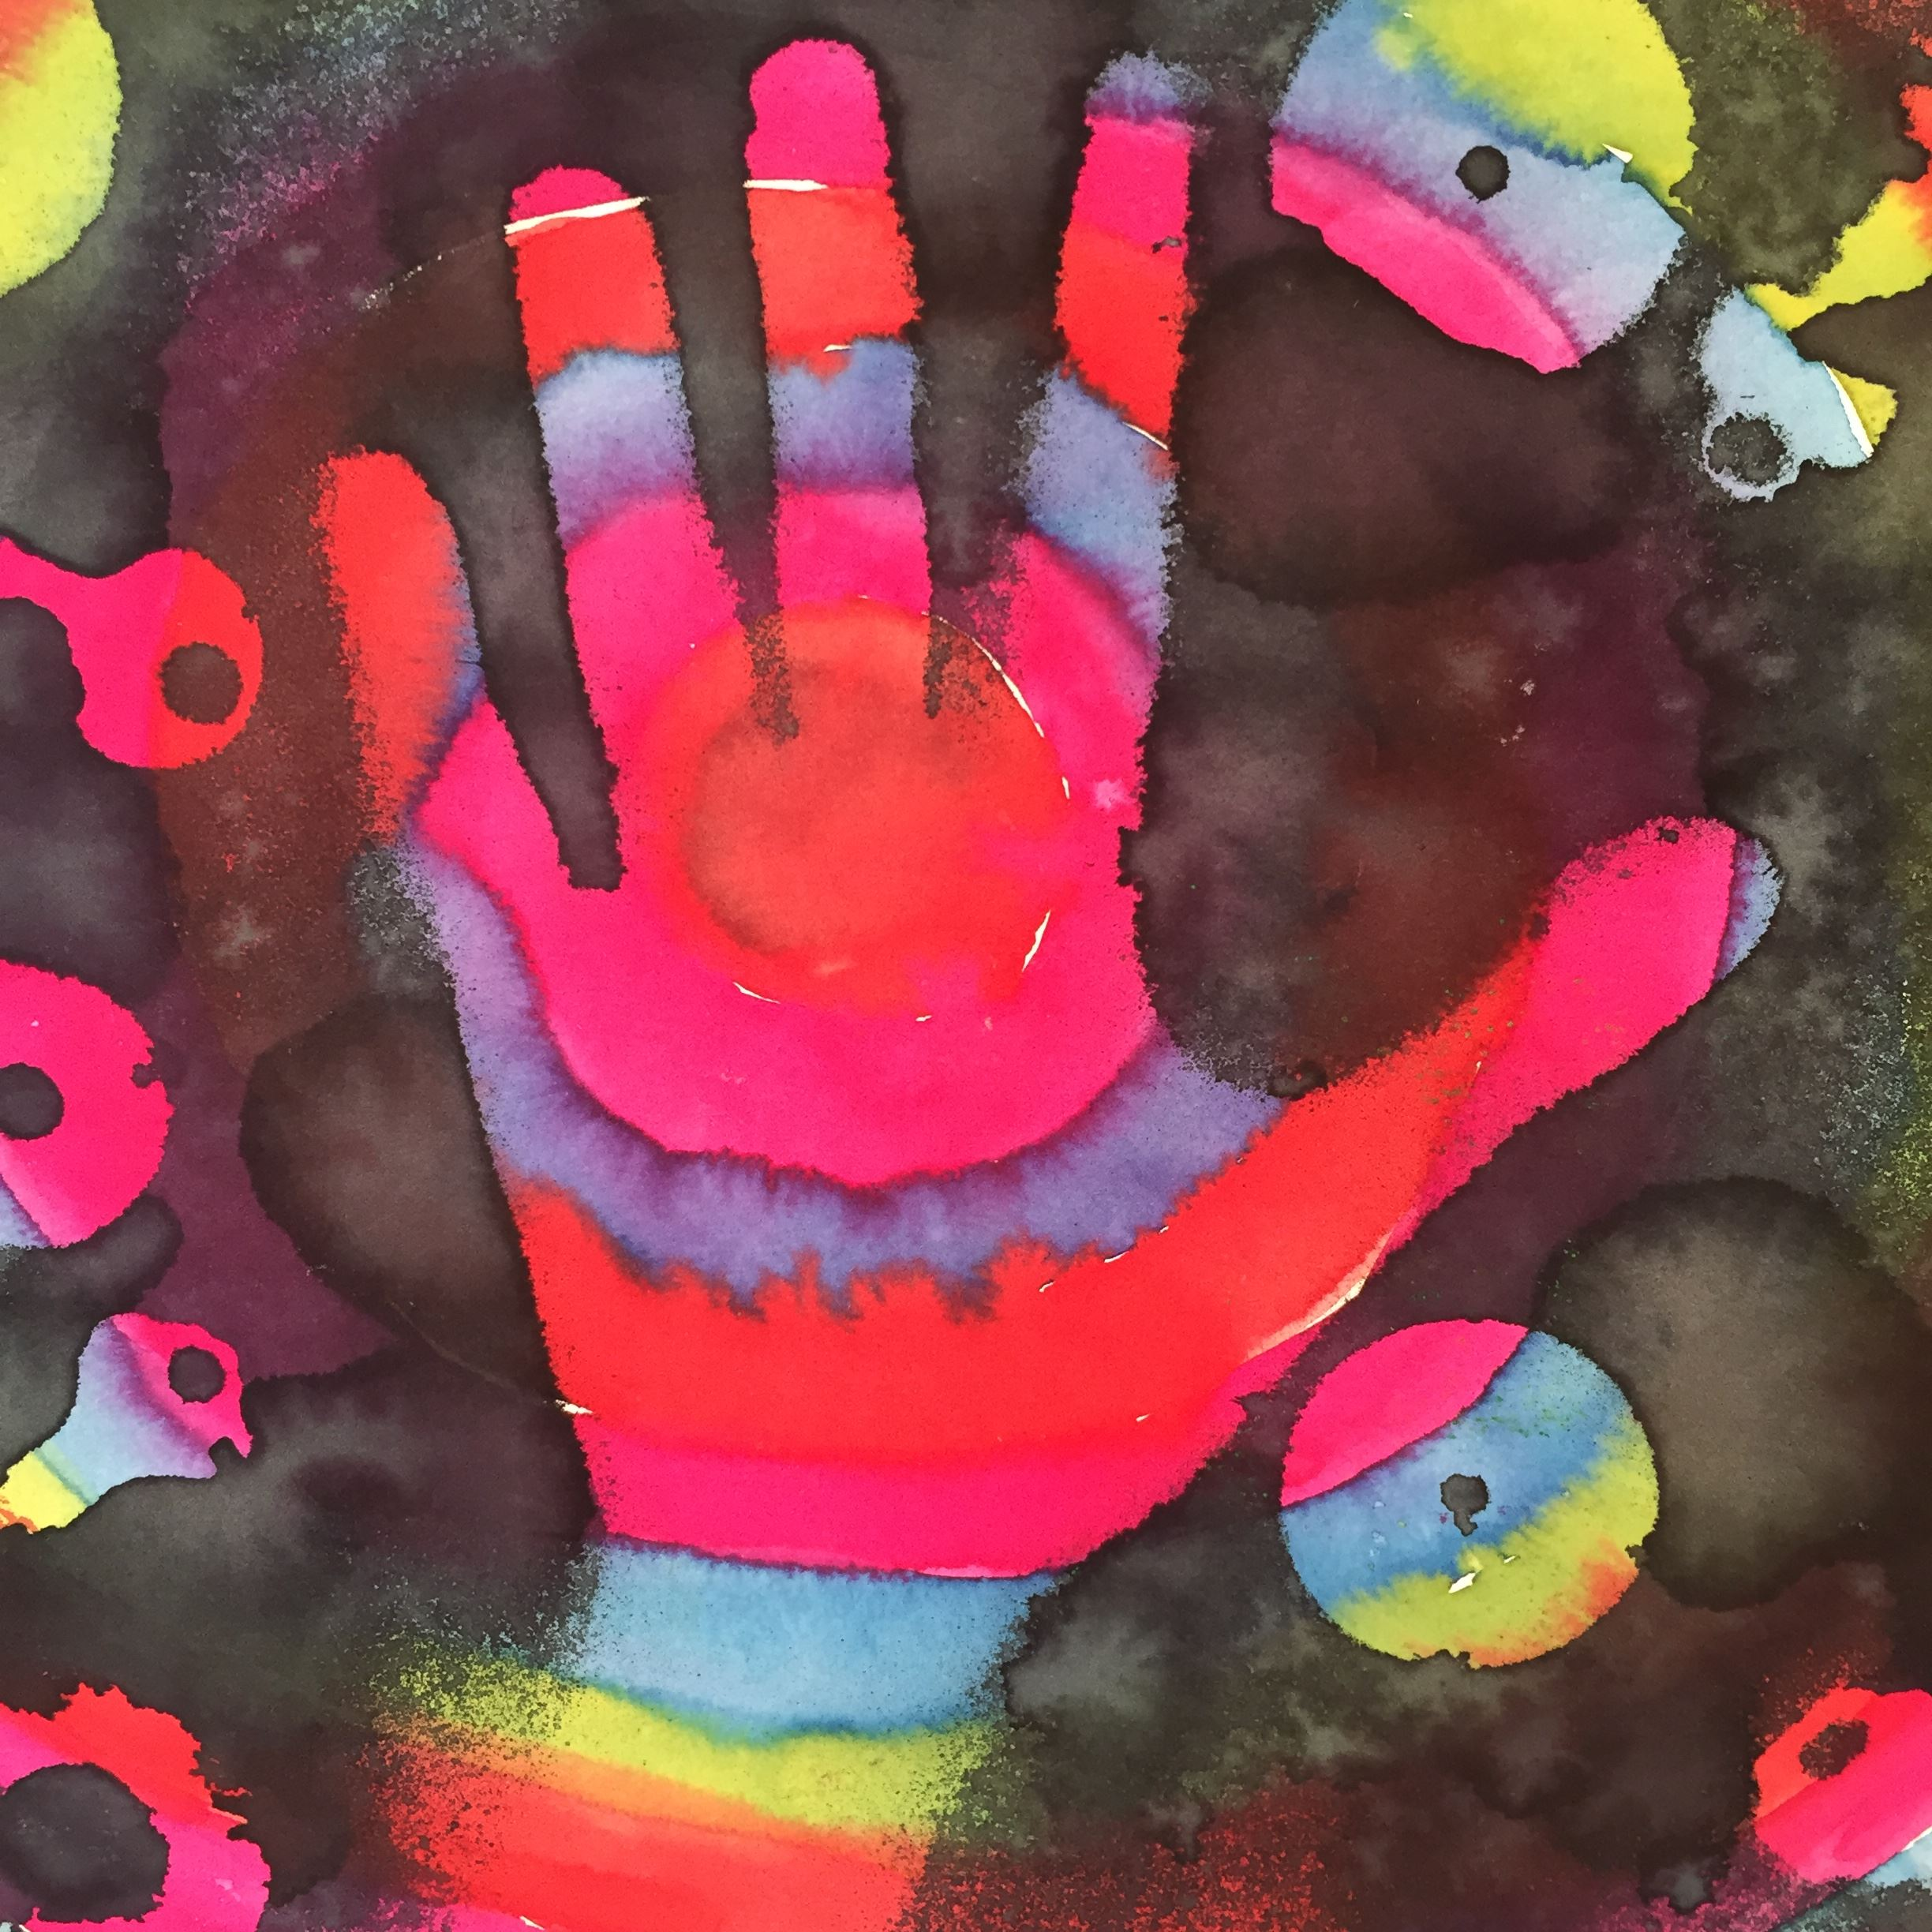 Abstract painting of colorful hand